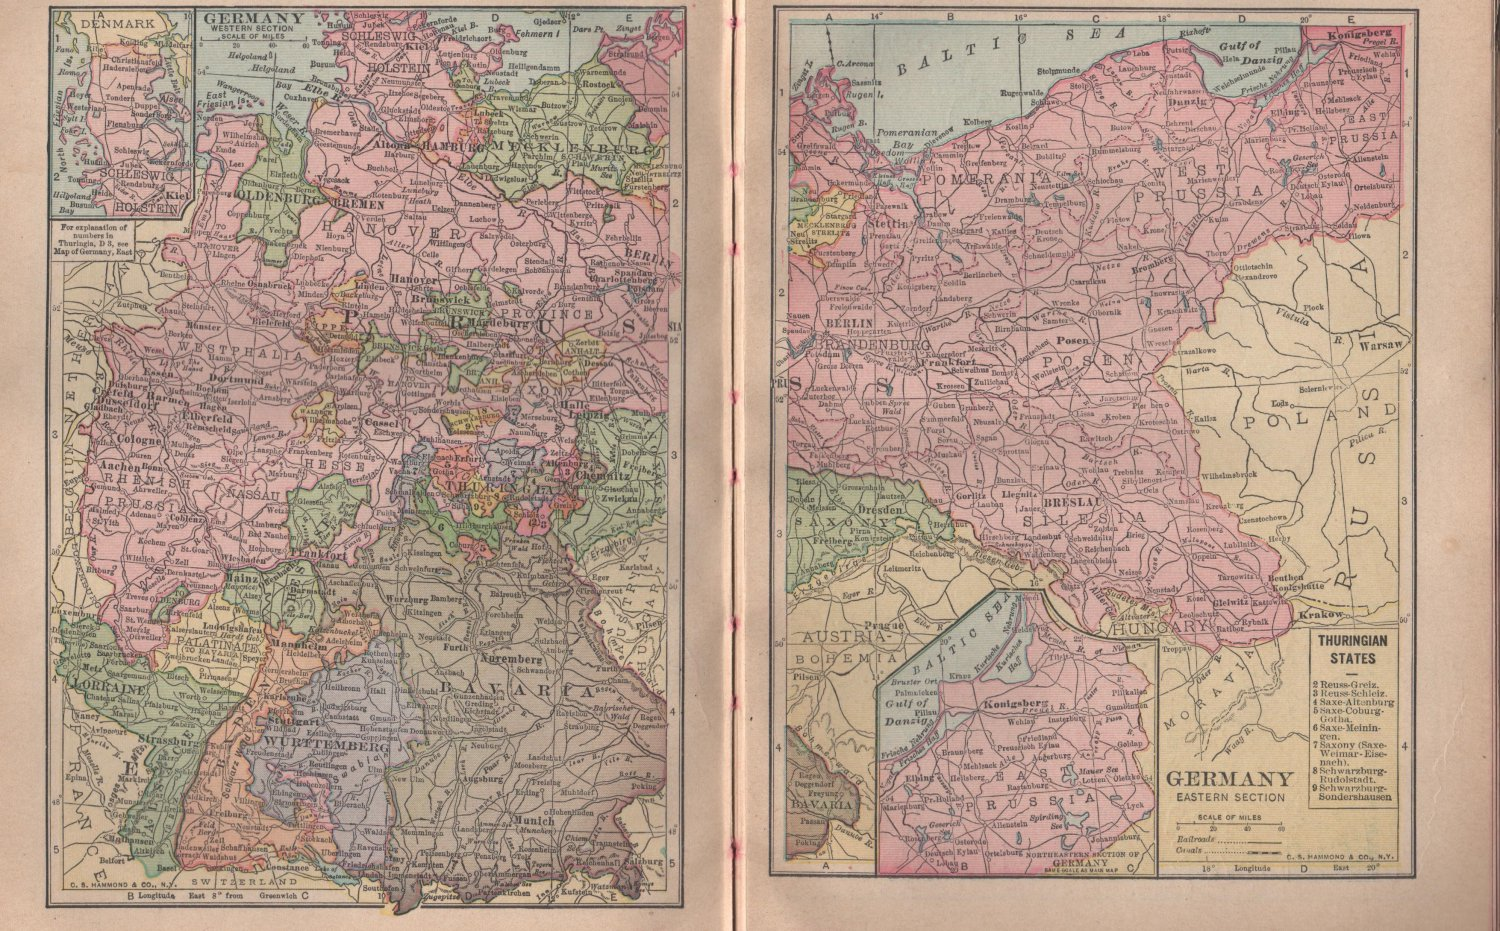 Maps of East and West Germany, C.S. Hammond & Co. Atlas, Two Full Color Pages c.1910